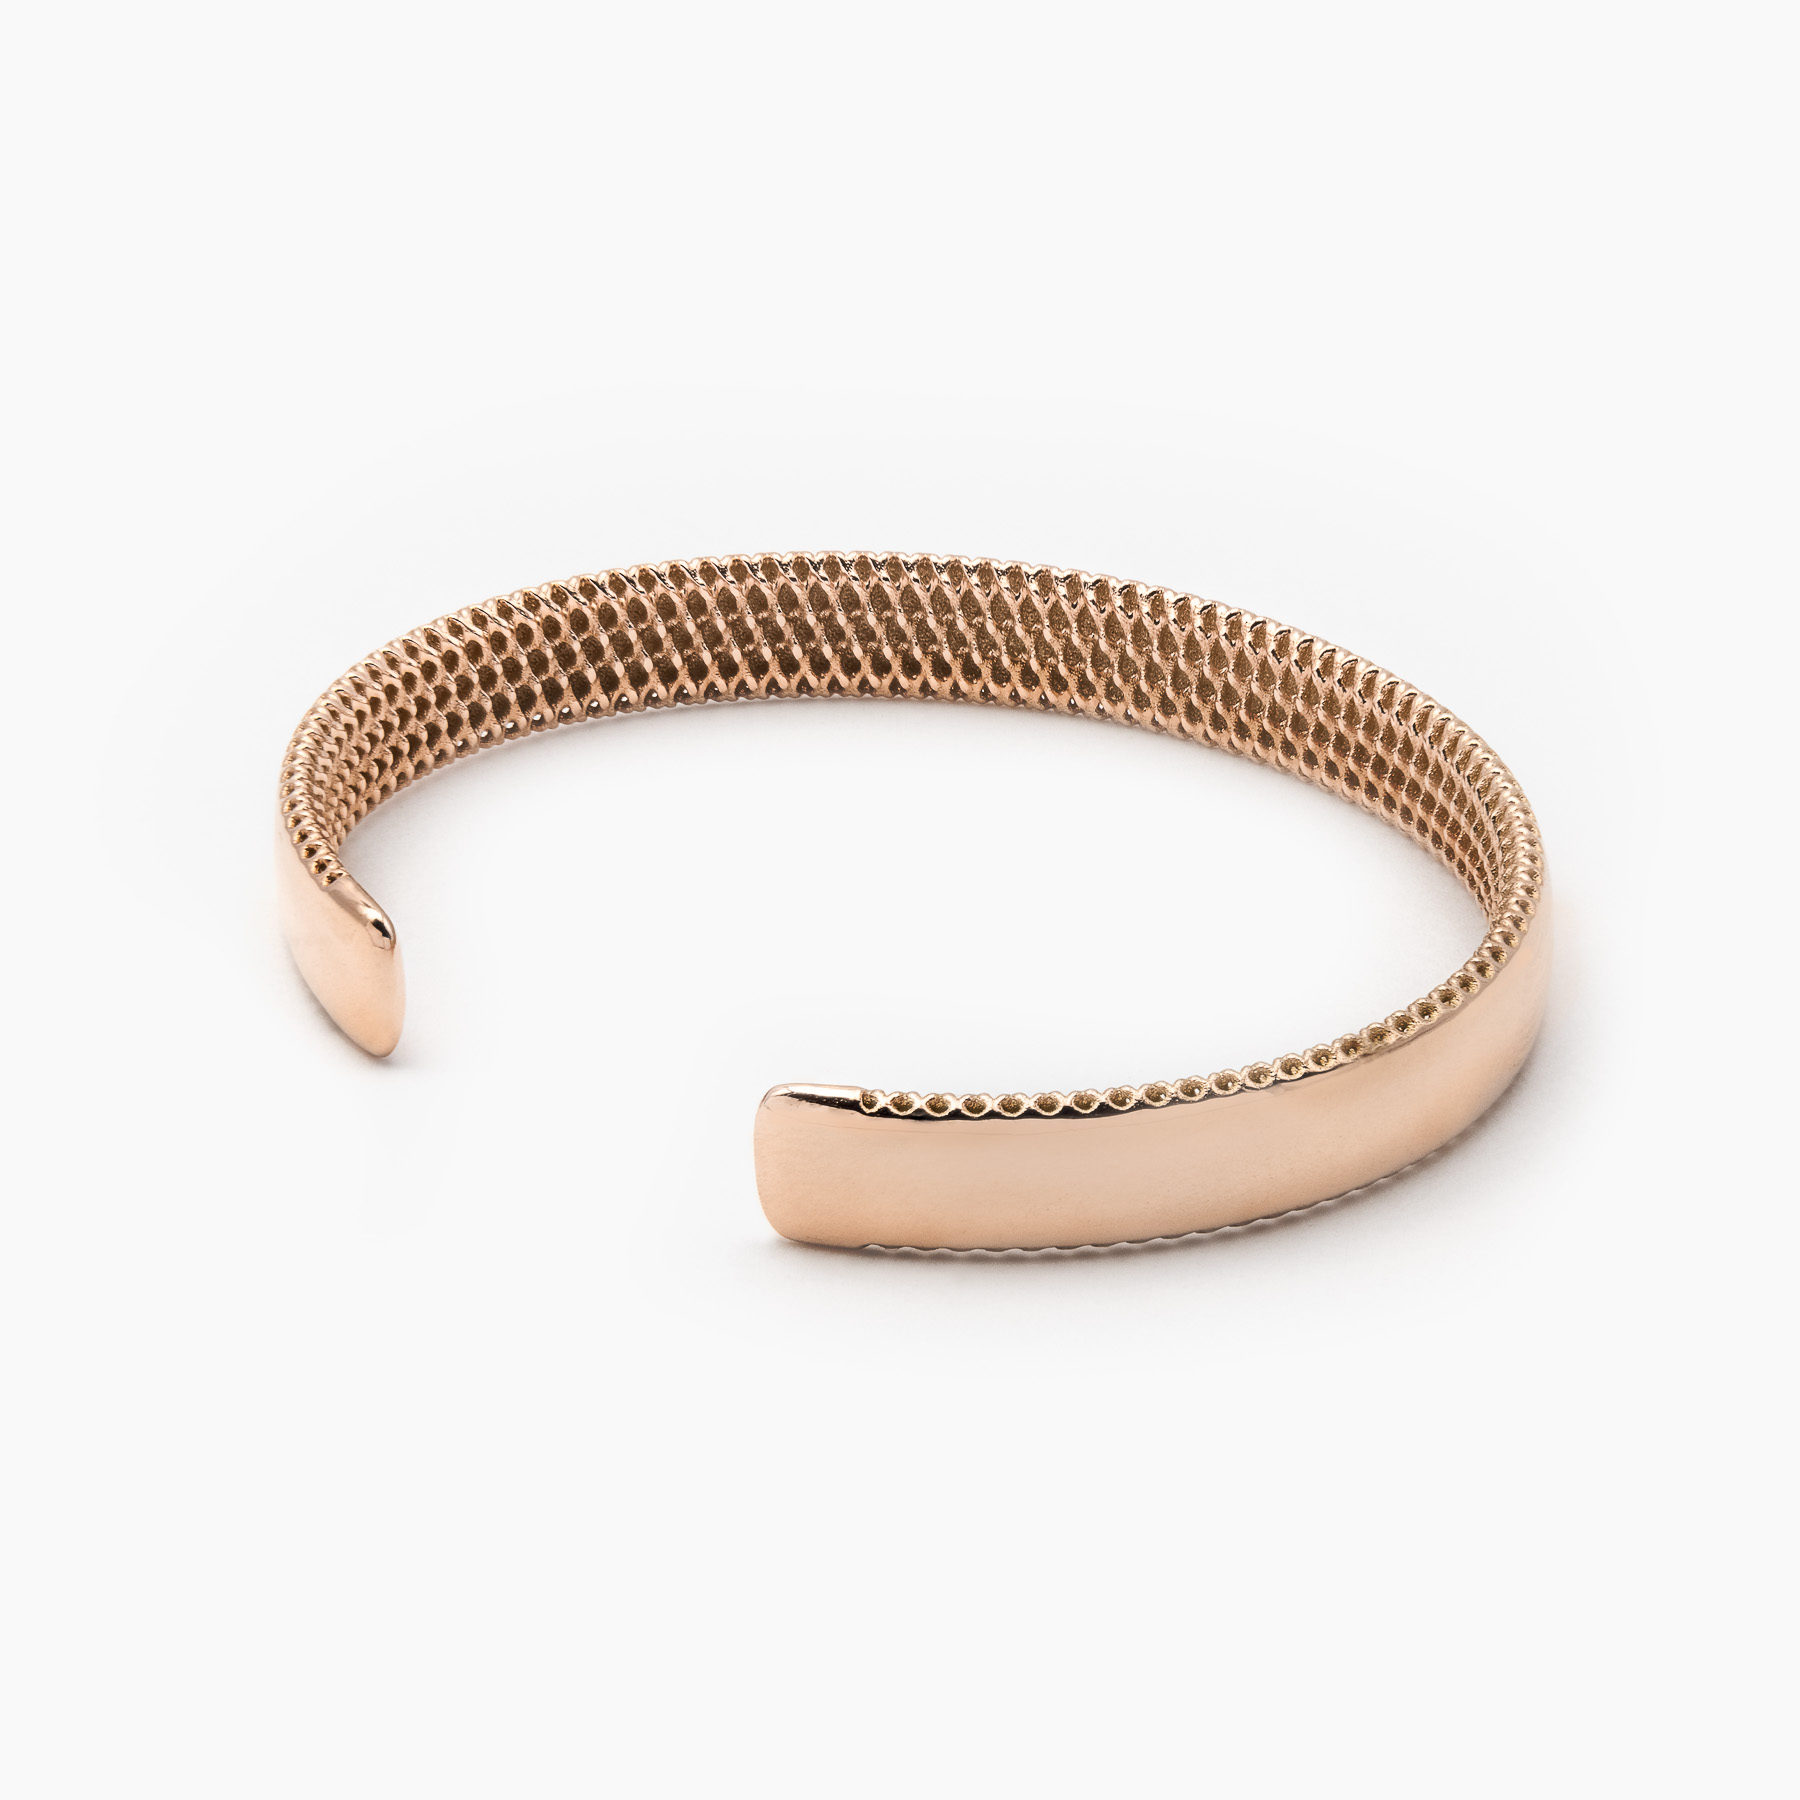 Avi Bangle | Small | Article code: Avi-Bangle-S